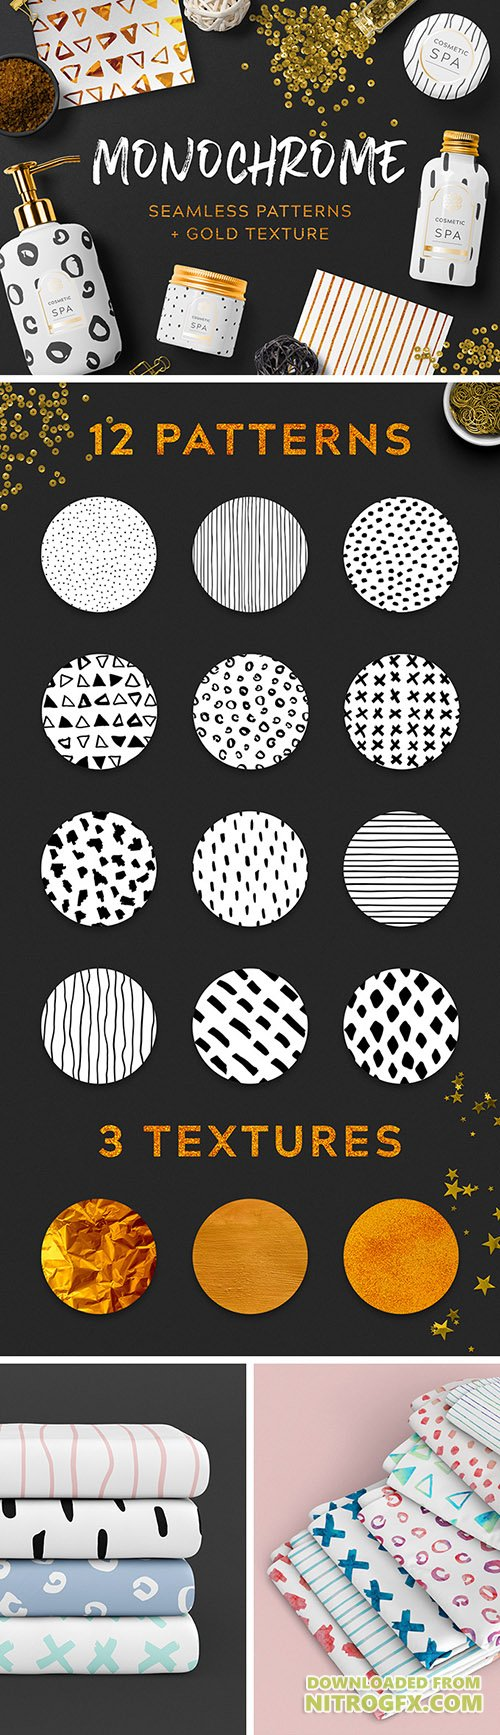 EPS, PNG, JPG Patterns - Monochrome Seamless